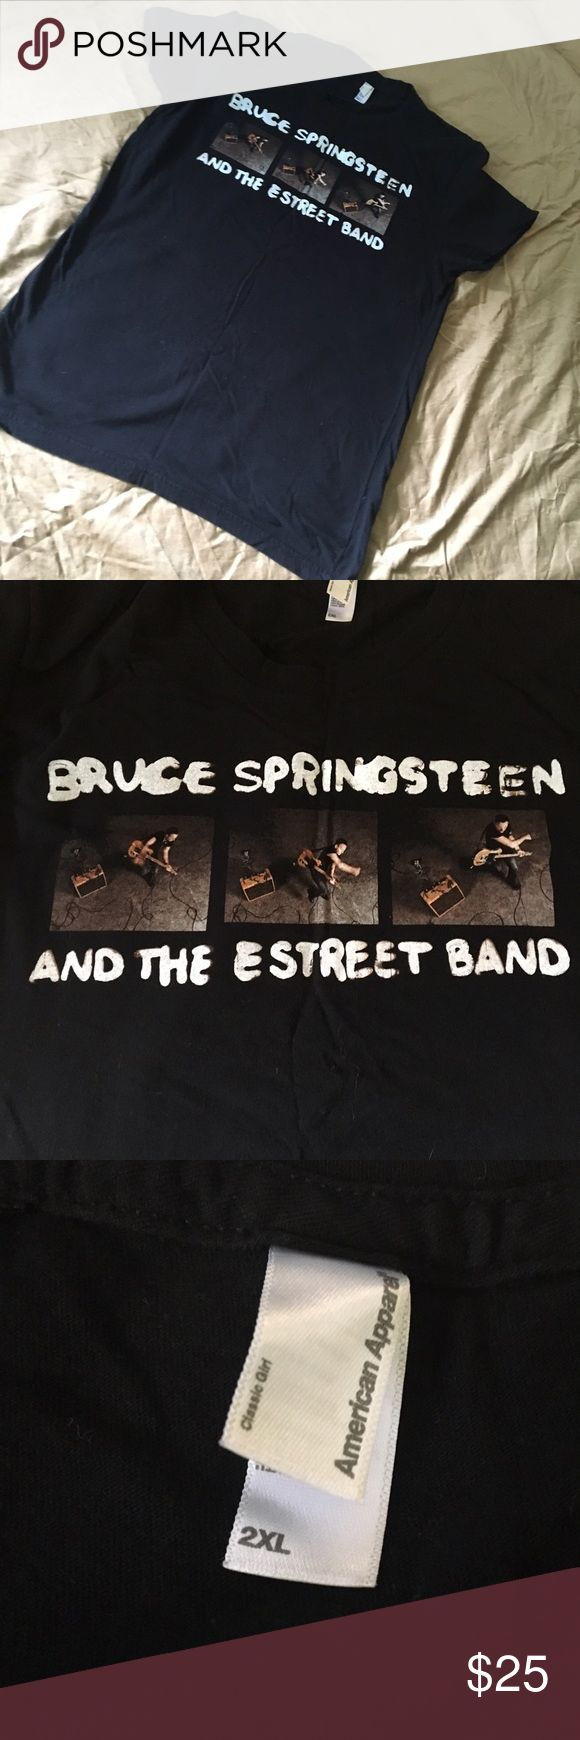 Official BRUCE Springsteen tour tee Circa 2012/13? tour. Purchased at Philly show. Make an offer! 30% off bundles of two or more! American Apparel Tops Tees - Short Sleeve